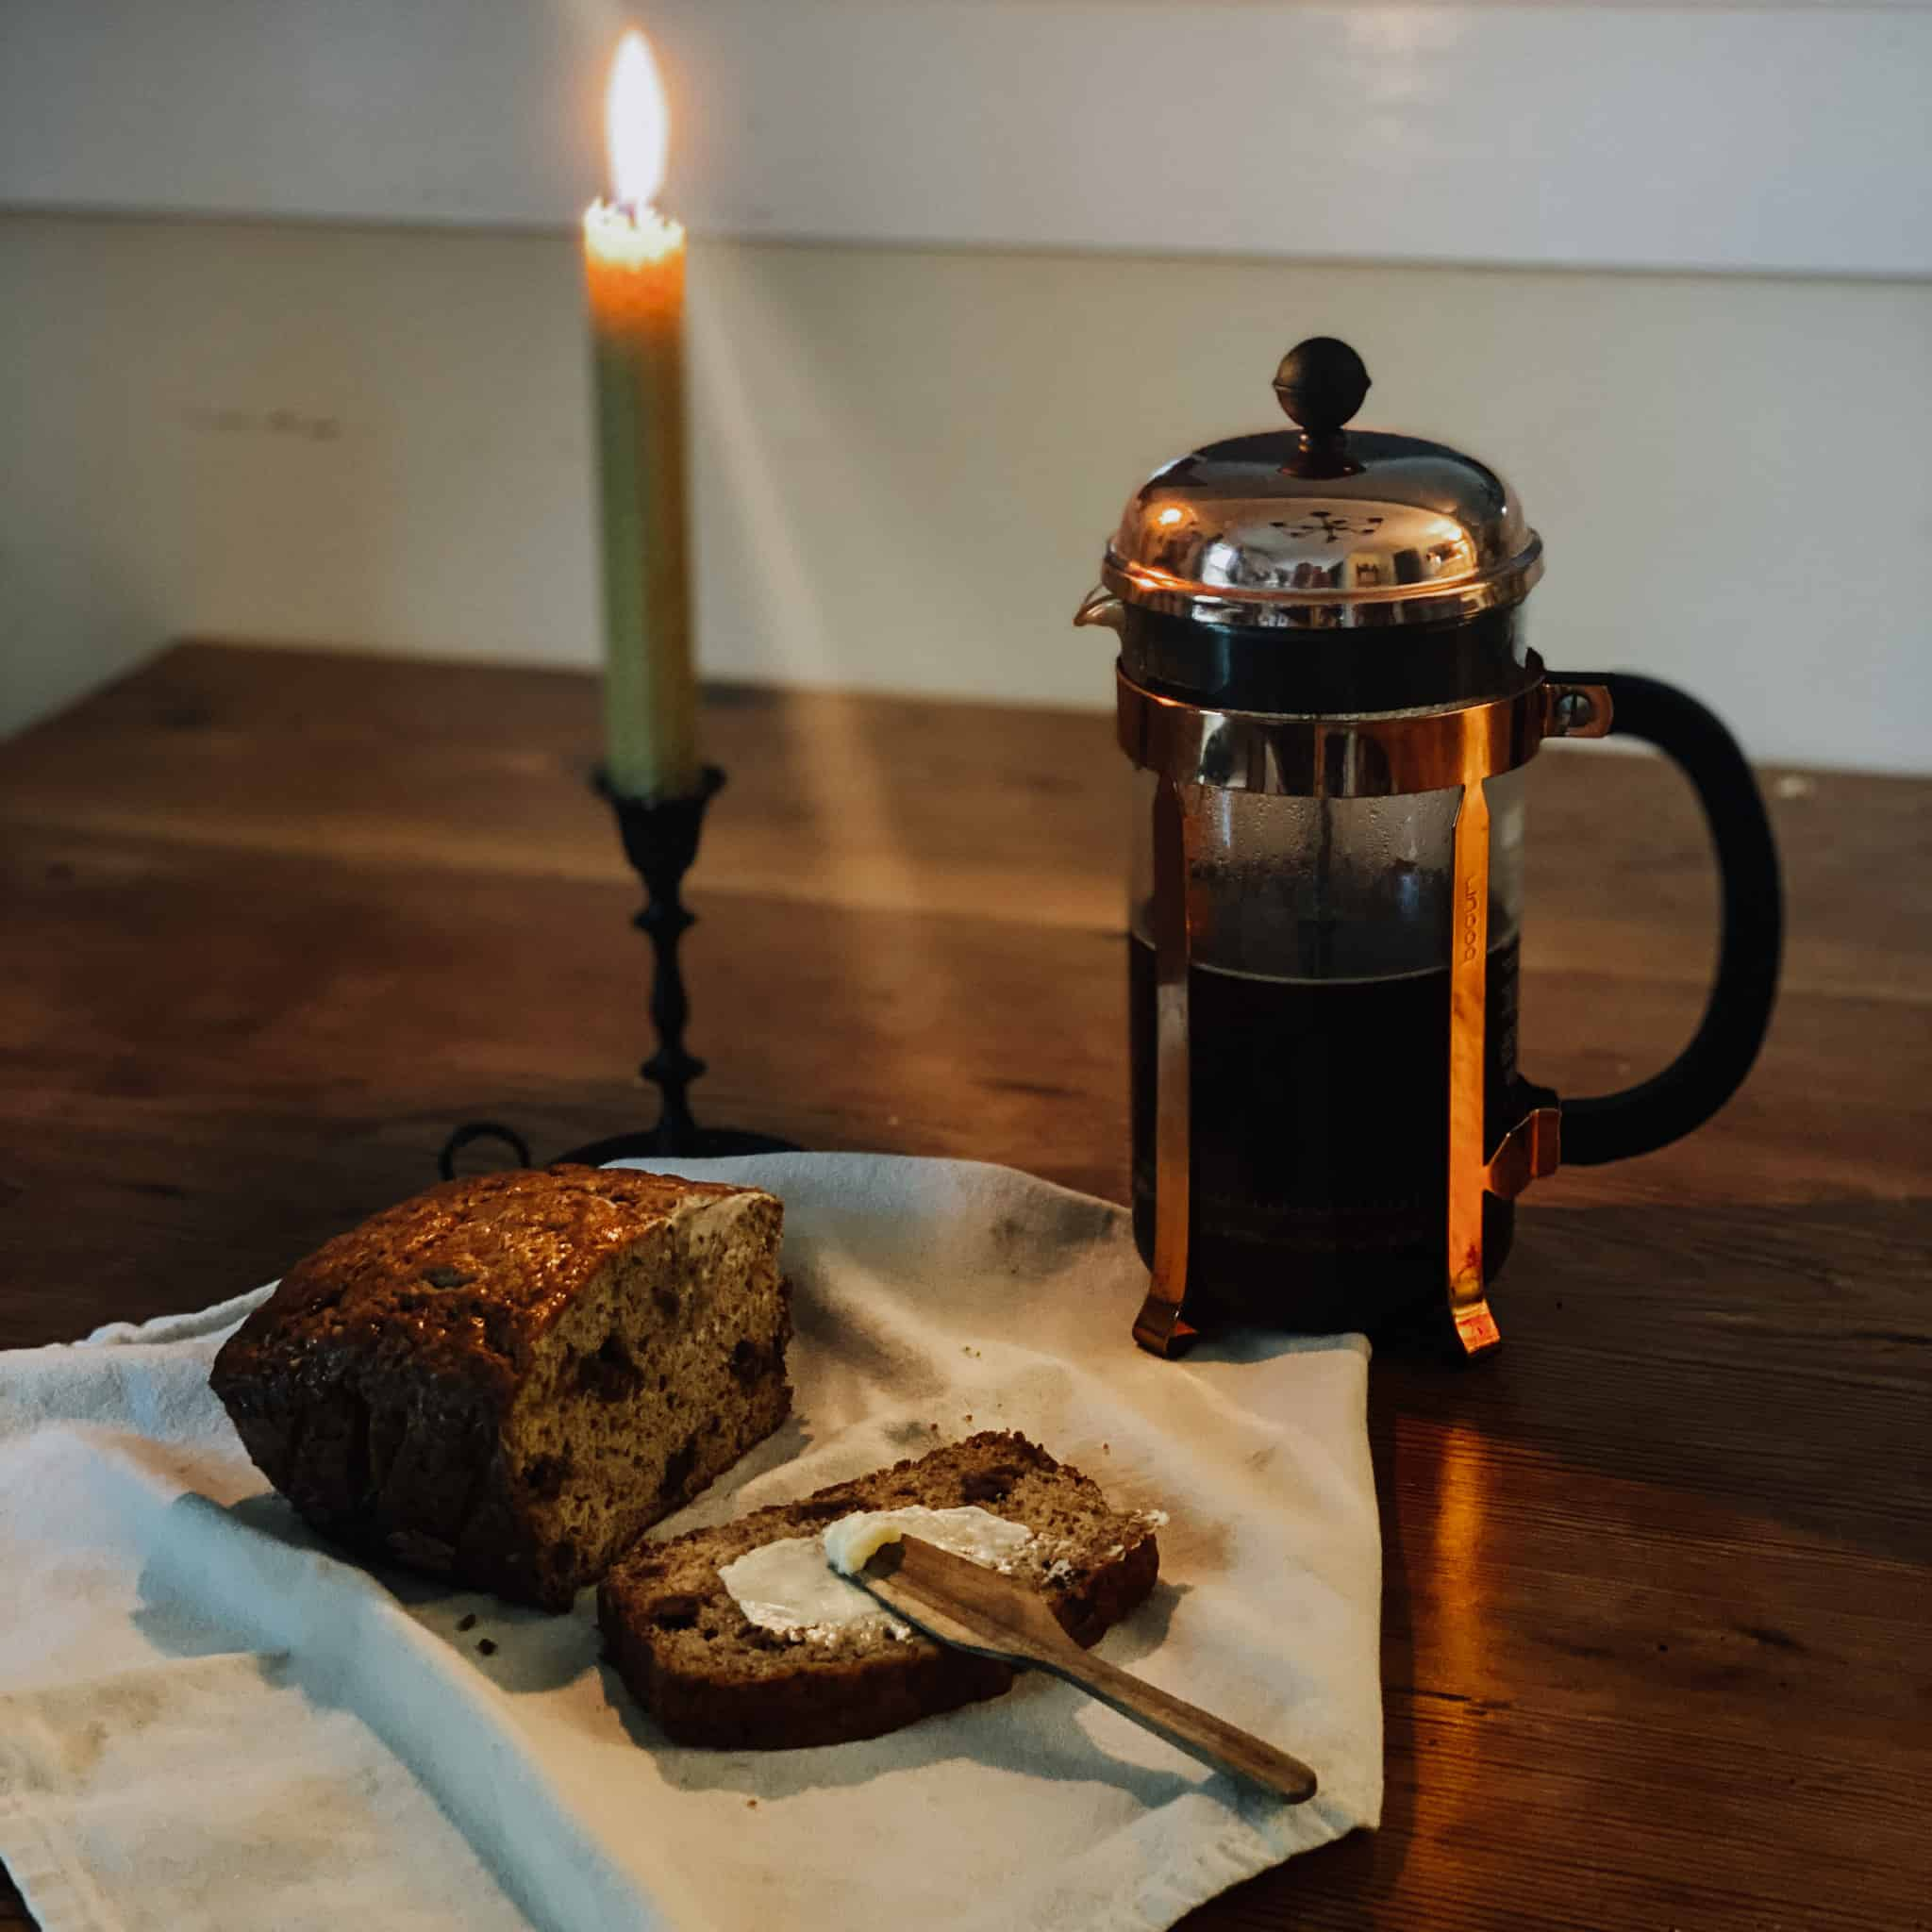 French press coffee and homemade bread by candlelight